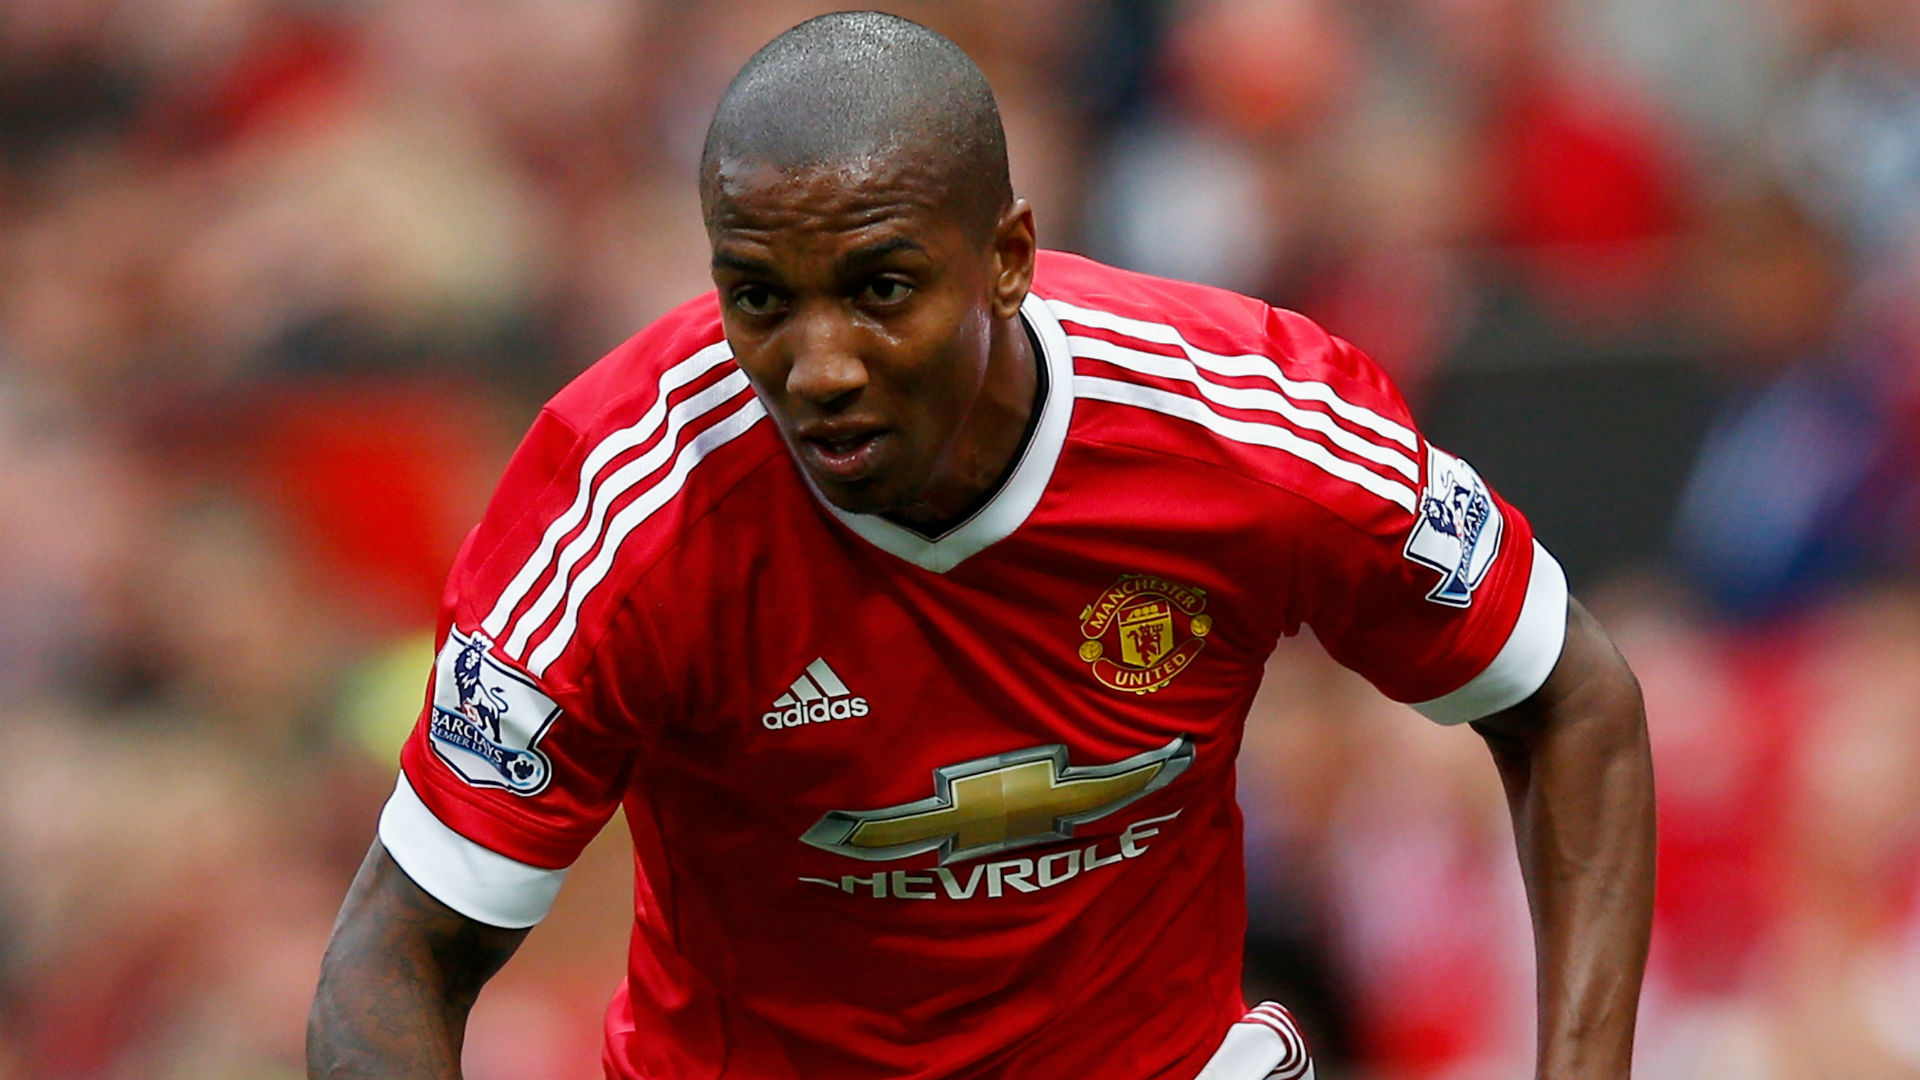 ashley-young-cropped_a4r3y23arxmk1i3g8ajgtm2qyjpgt615092240